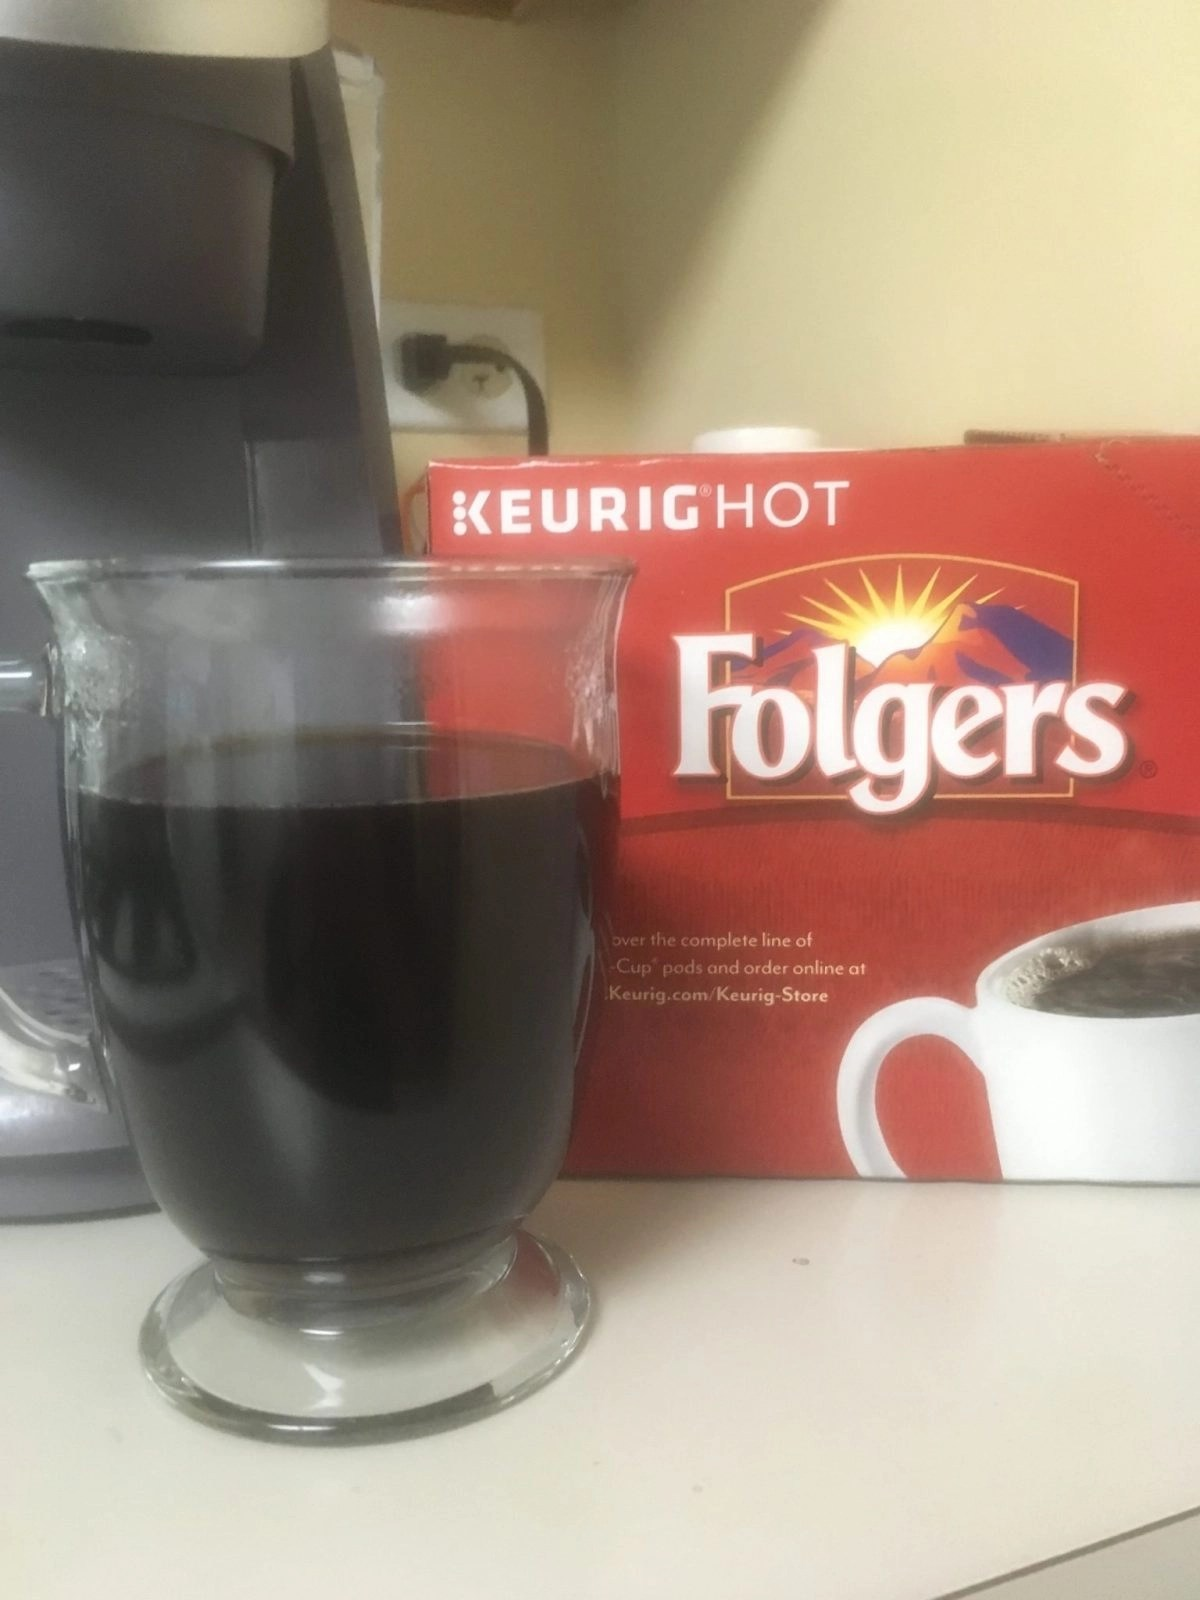 Brewed Folgers Coffee